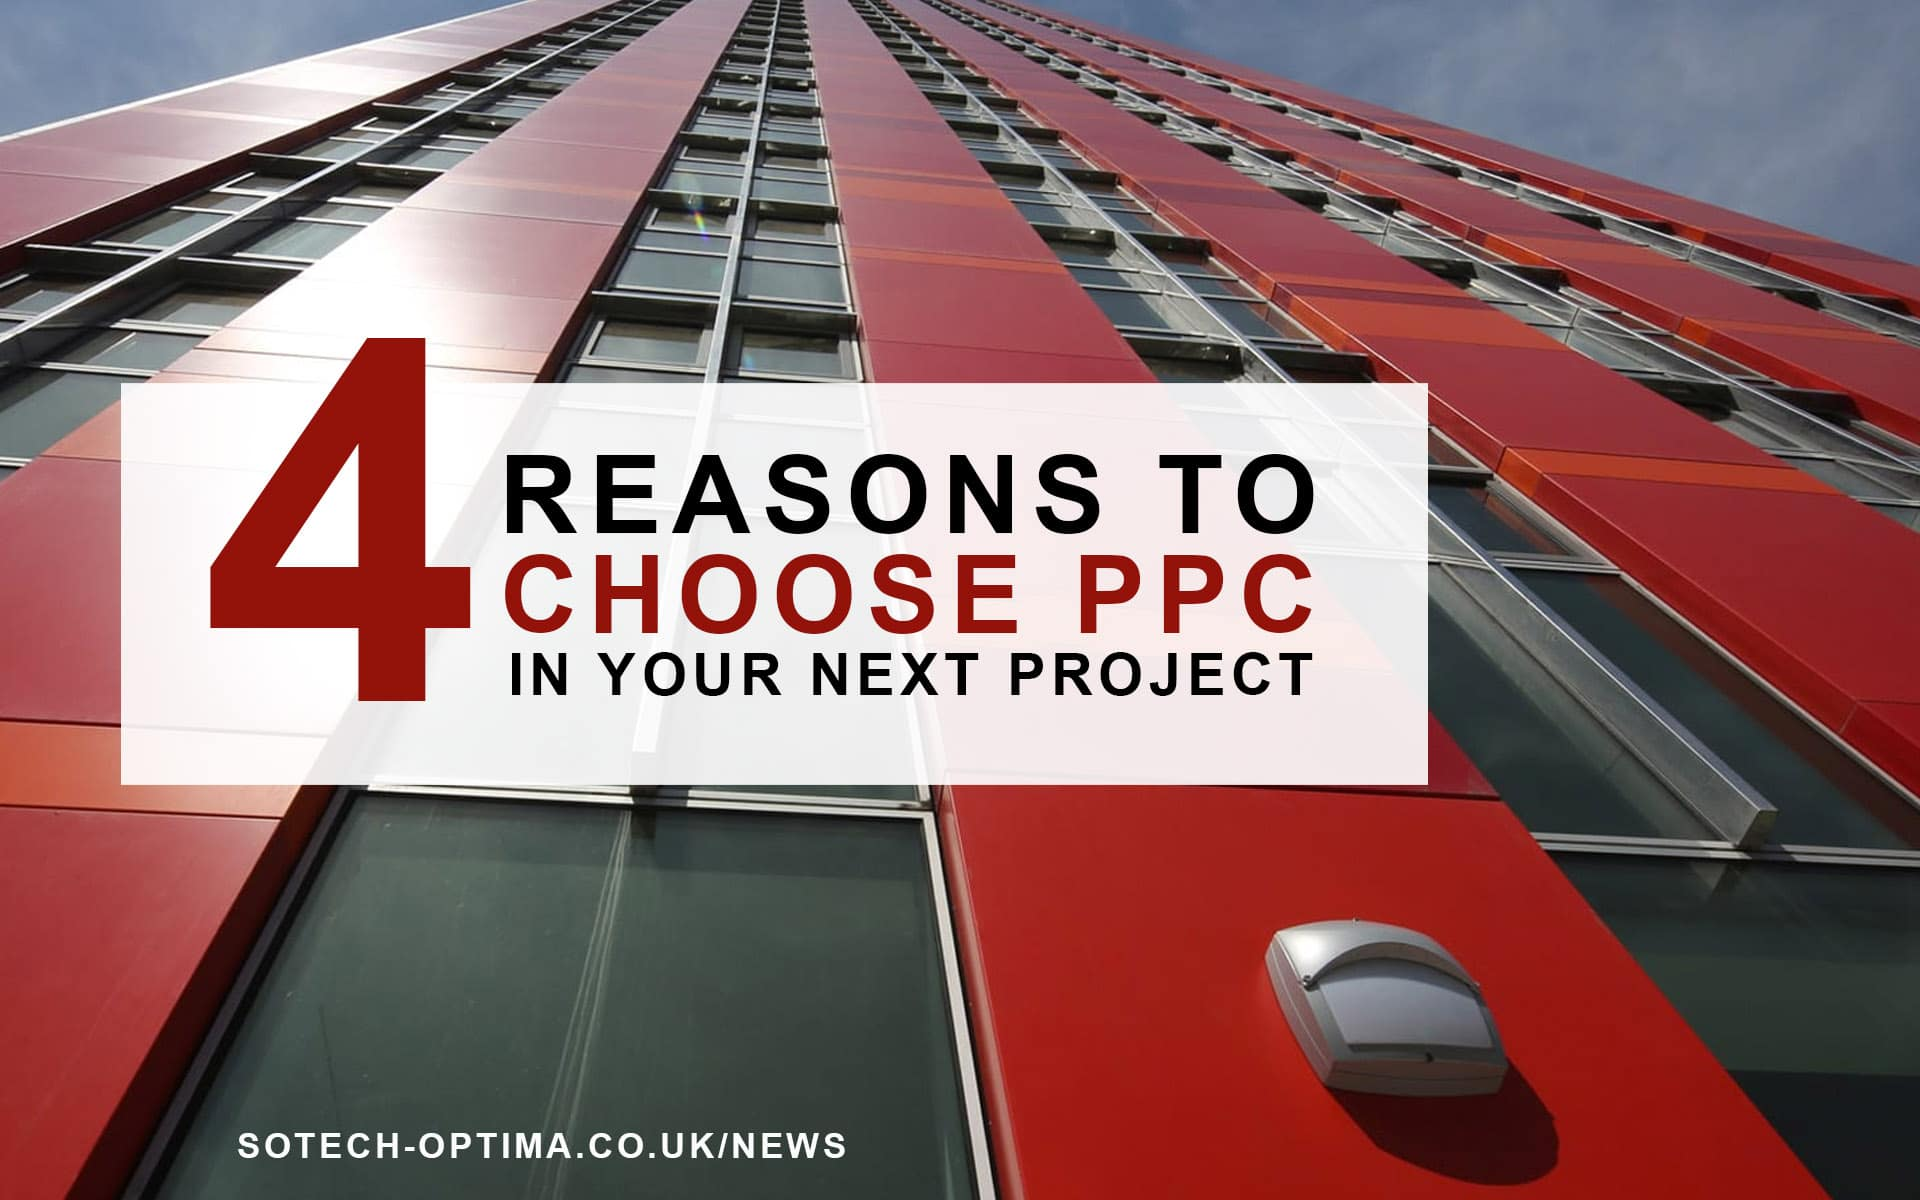 4 reasons to choose PPC V2